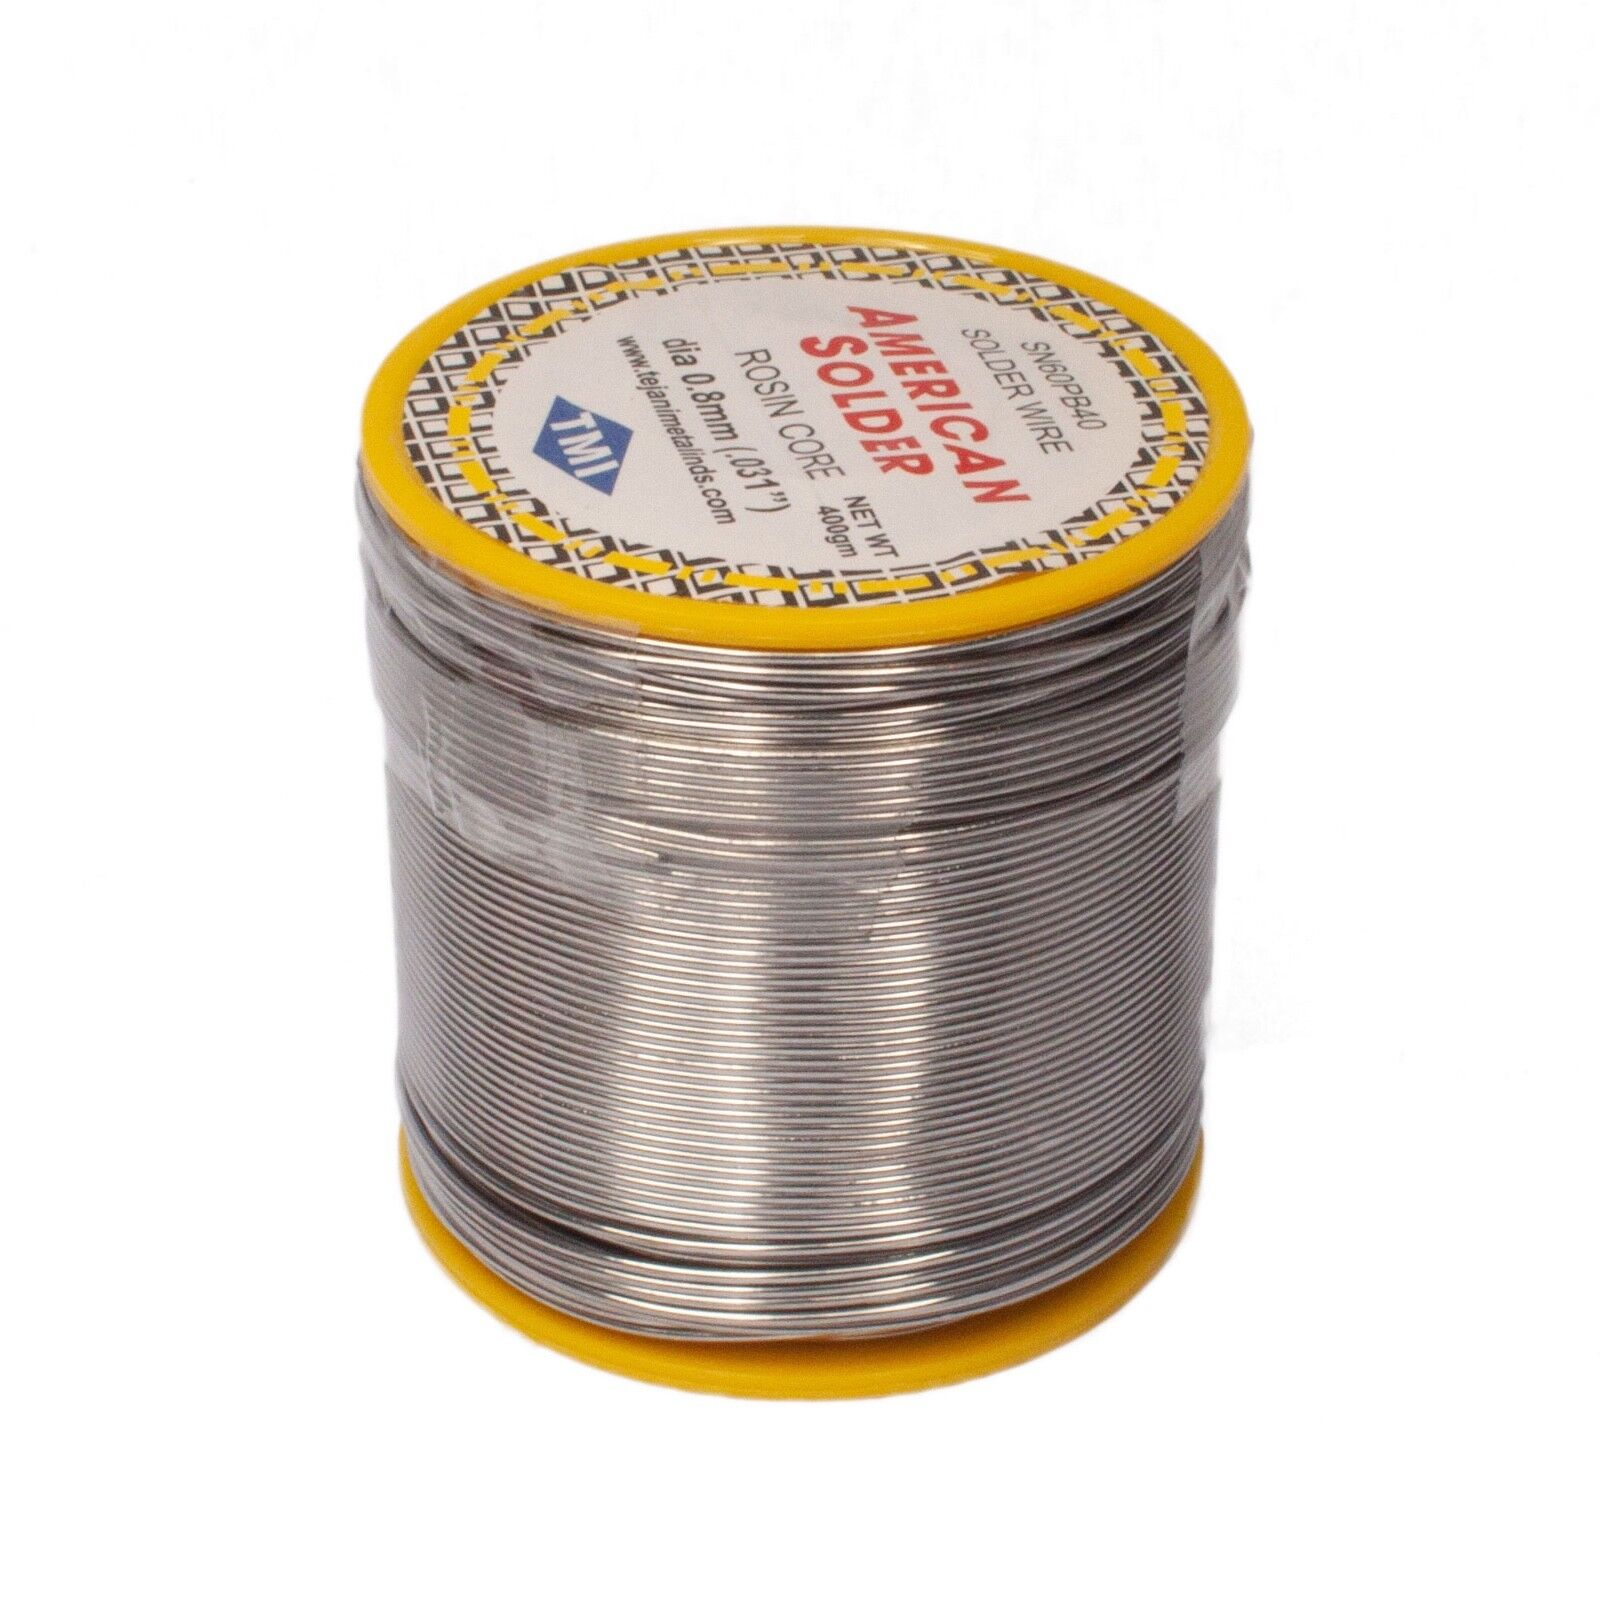 New 400G 0.8mm 60/40 Tin lead Solder rosin flux Wire Roll Soldering New